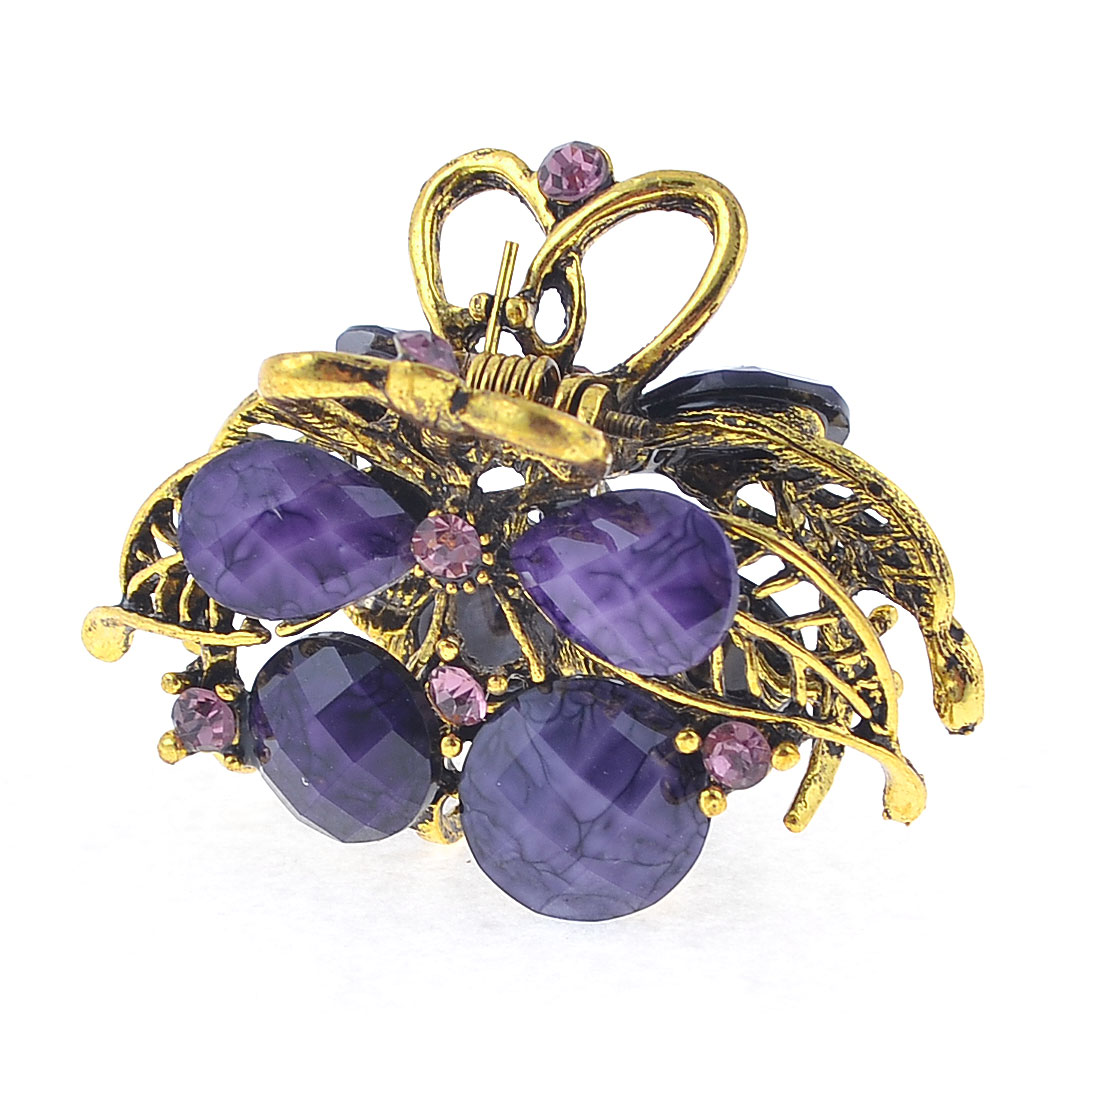 Dark Purple Beads Accent Cherry Design Bronze Tone Mini Hair Claw Clamp